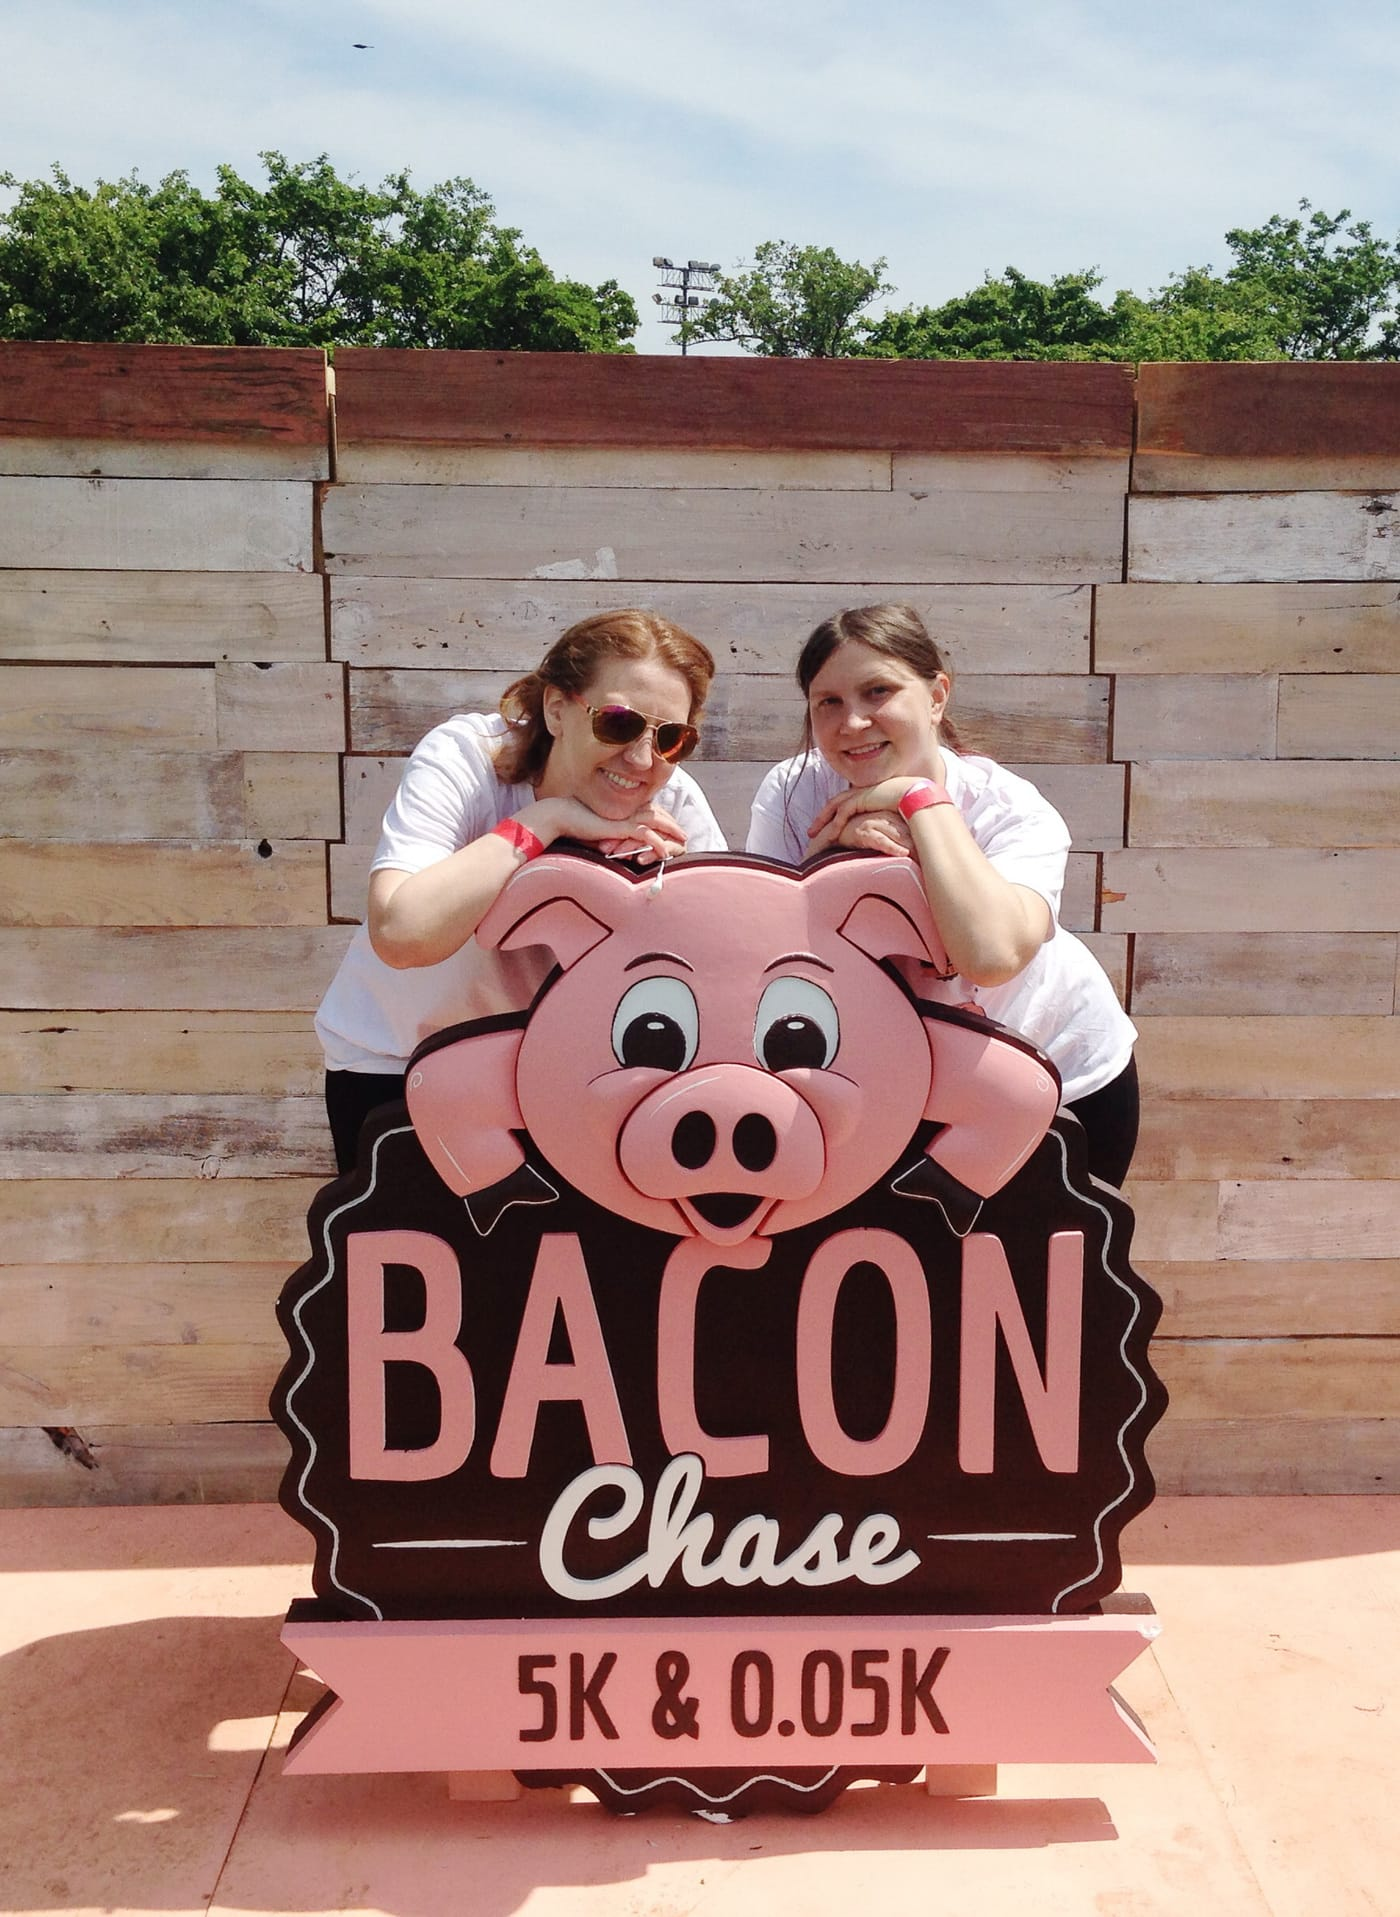 Val and Emily after the Bacon Chase 5K in Chicago, Illinois.